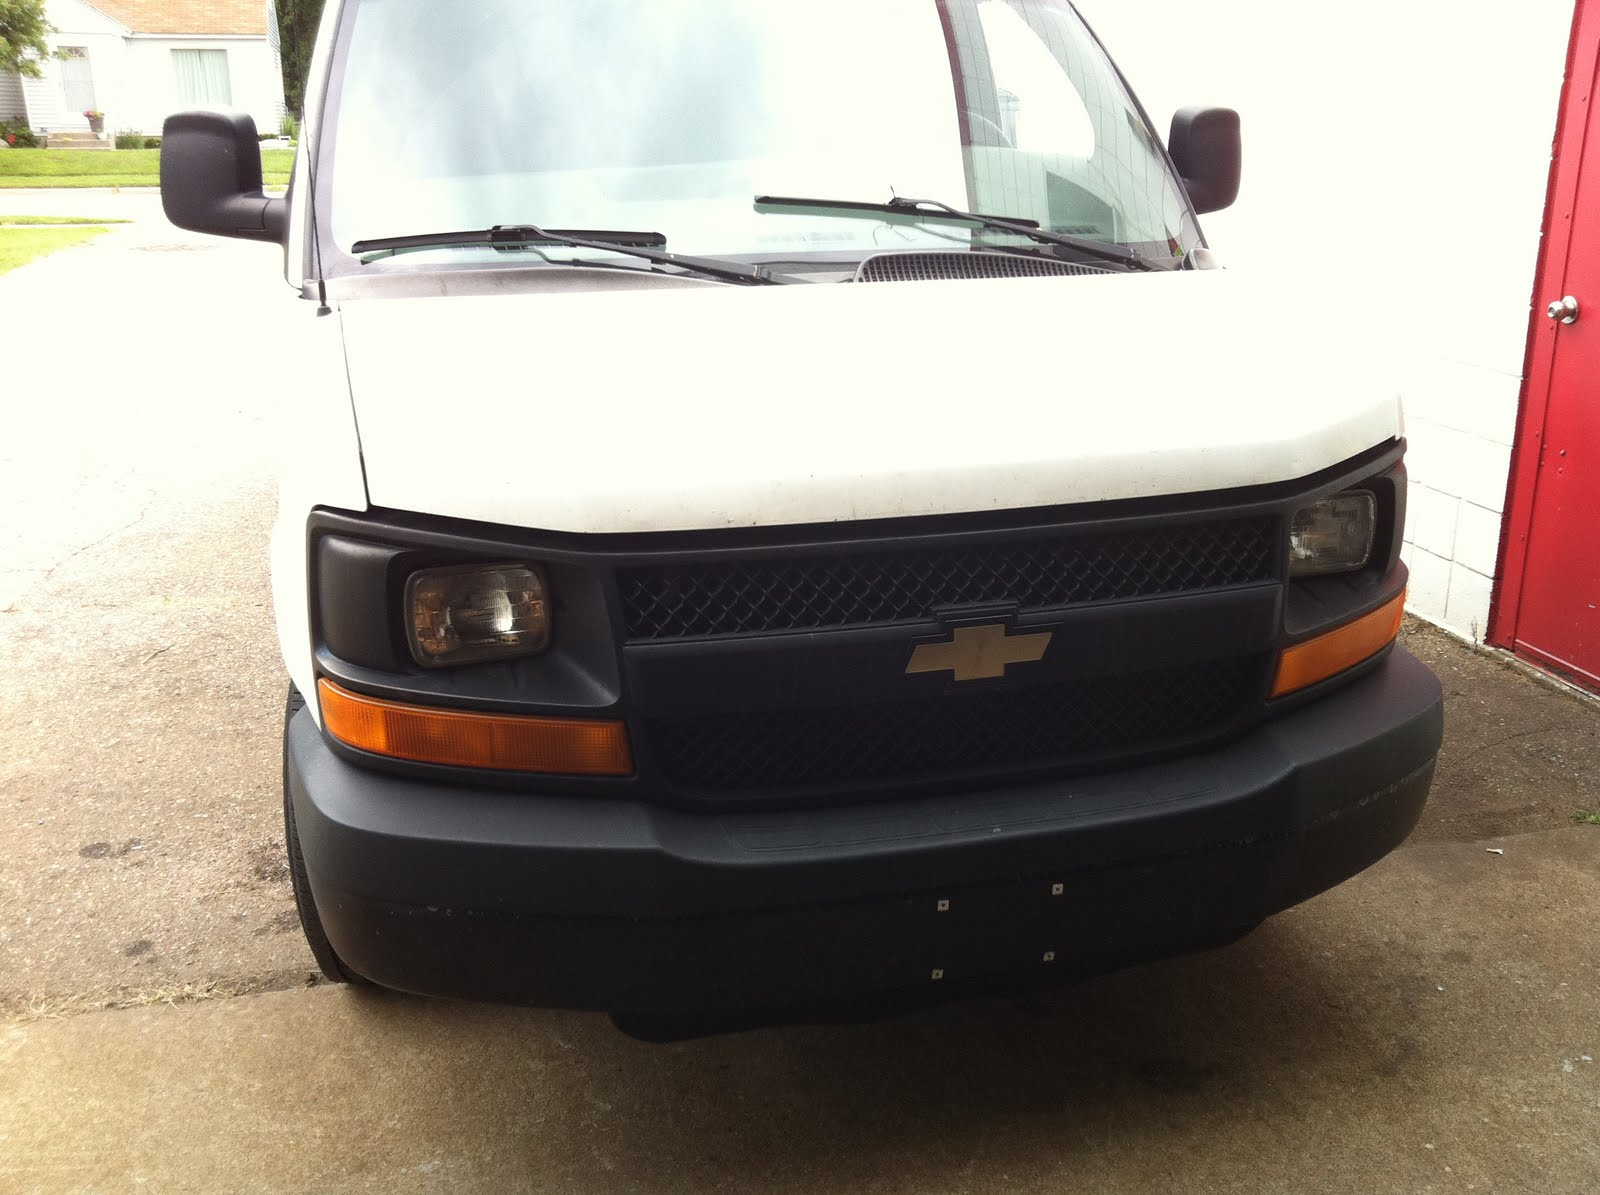 small resolution of steps must be followed to correctly diagnose any issue with your vehicle today we will look at a 2003 chevrolet express van the air conditioner doesn t